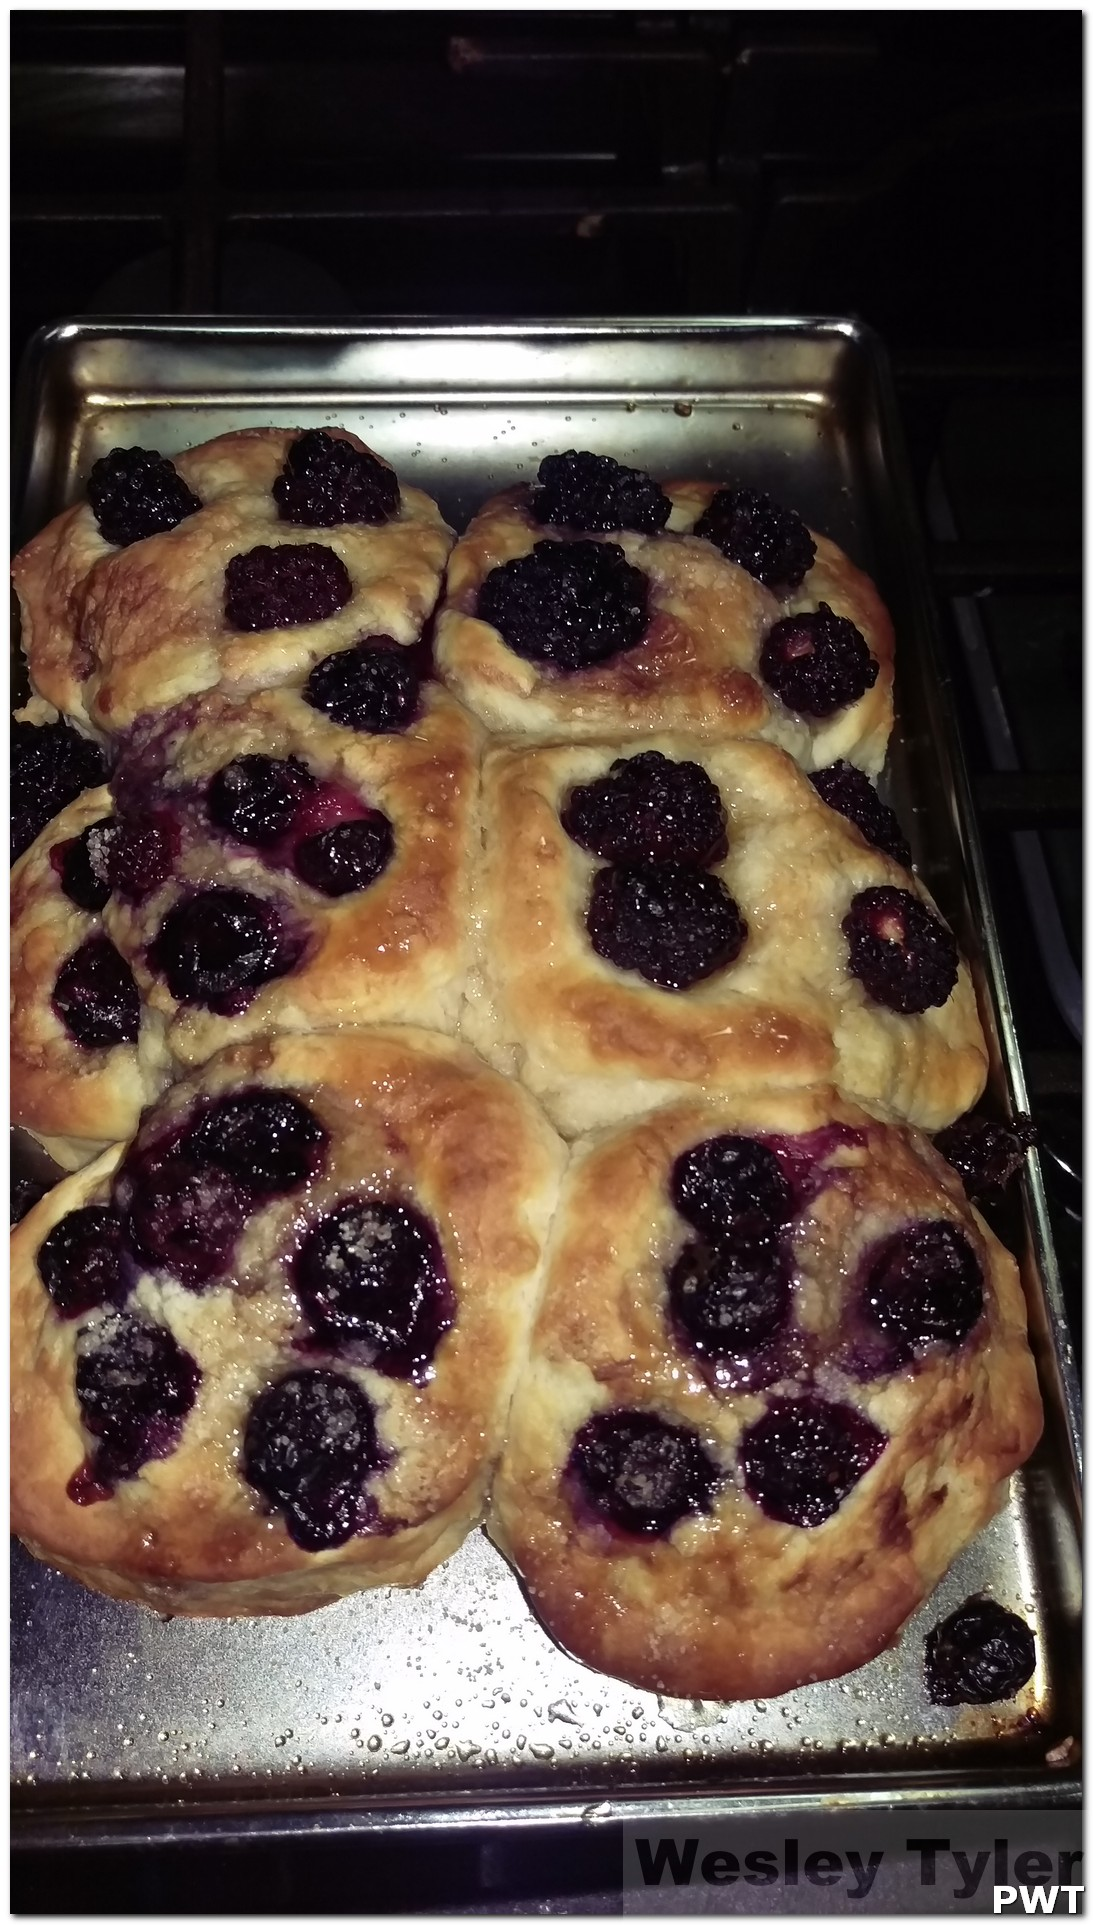 Blackberry, Blueberry scones w maple syrup drizzle ,  and Real Bacon in the Convection gas oven…..its the real shizzle ma nizzle!